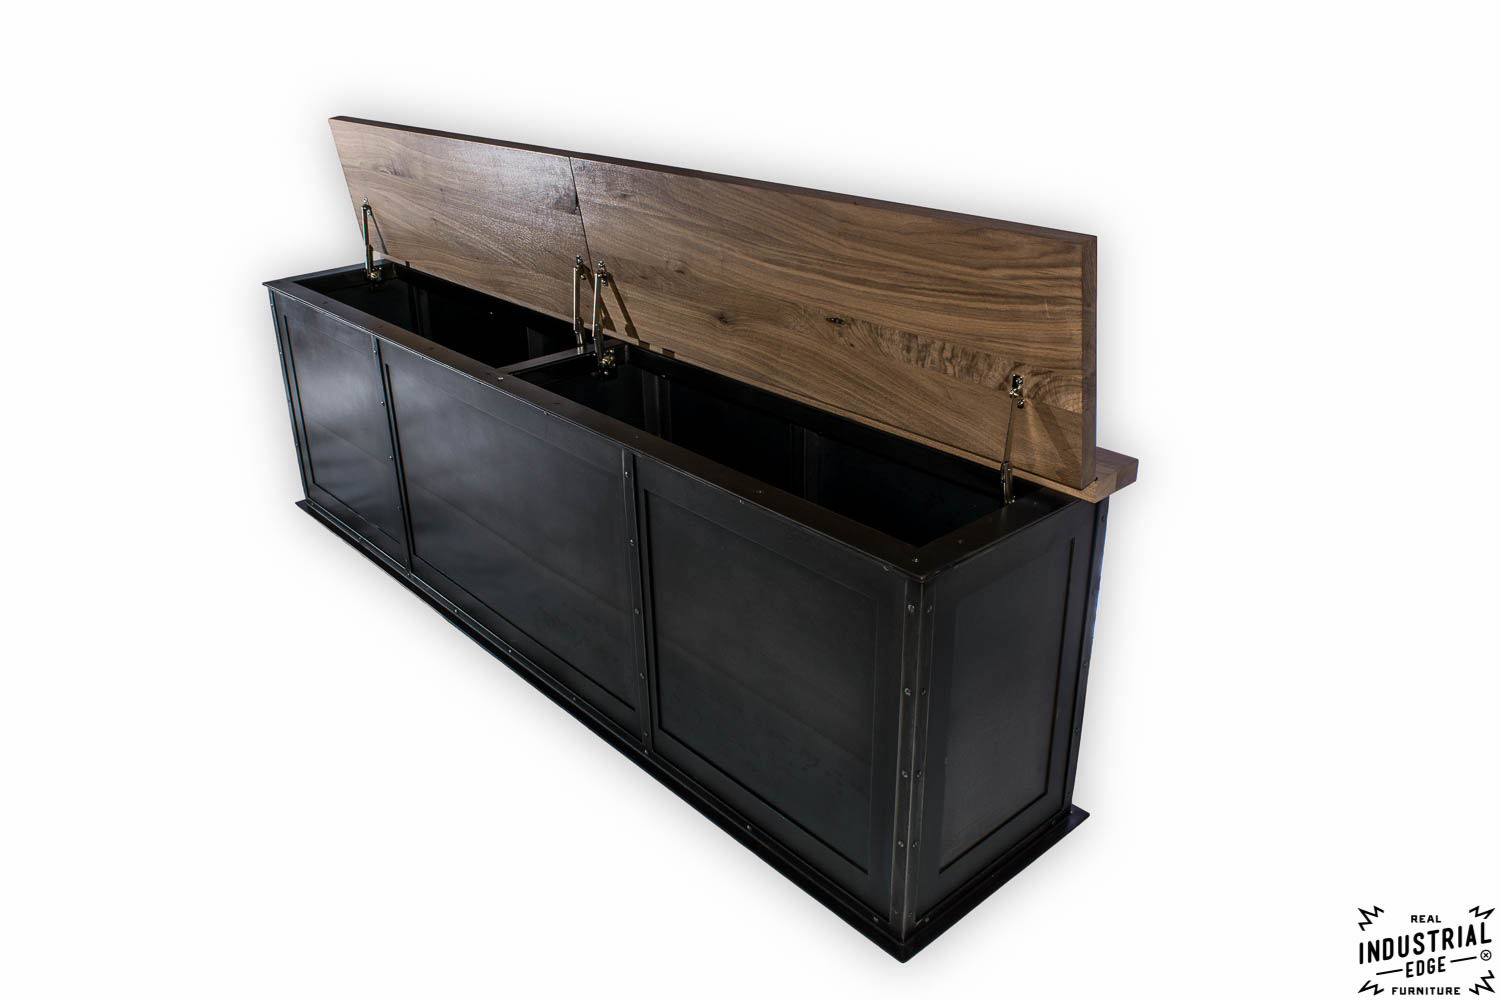 Steel Storage Bench Solid Walnut Top Real Industrial